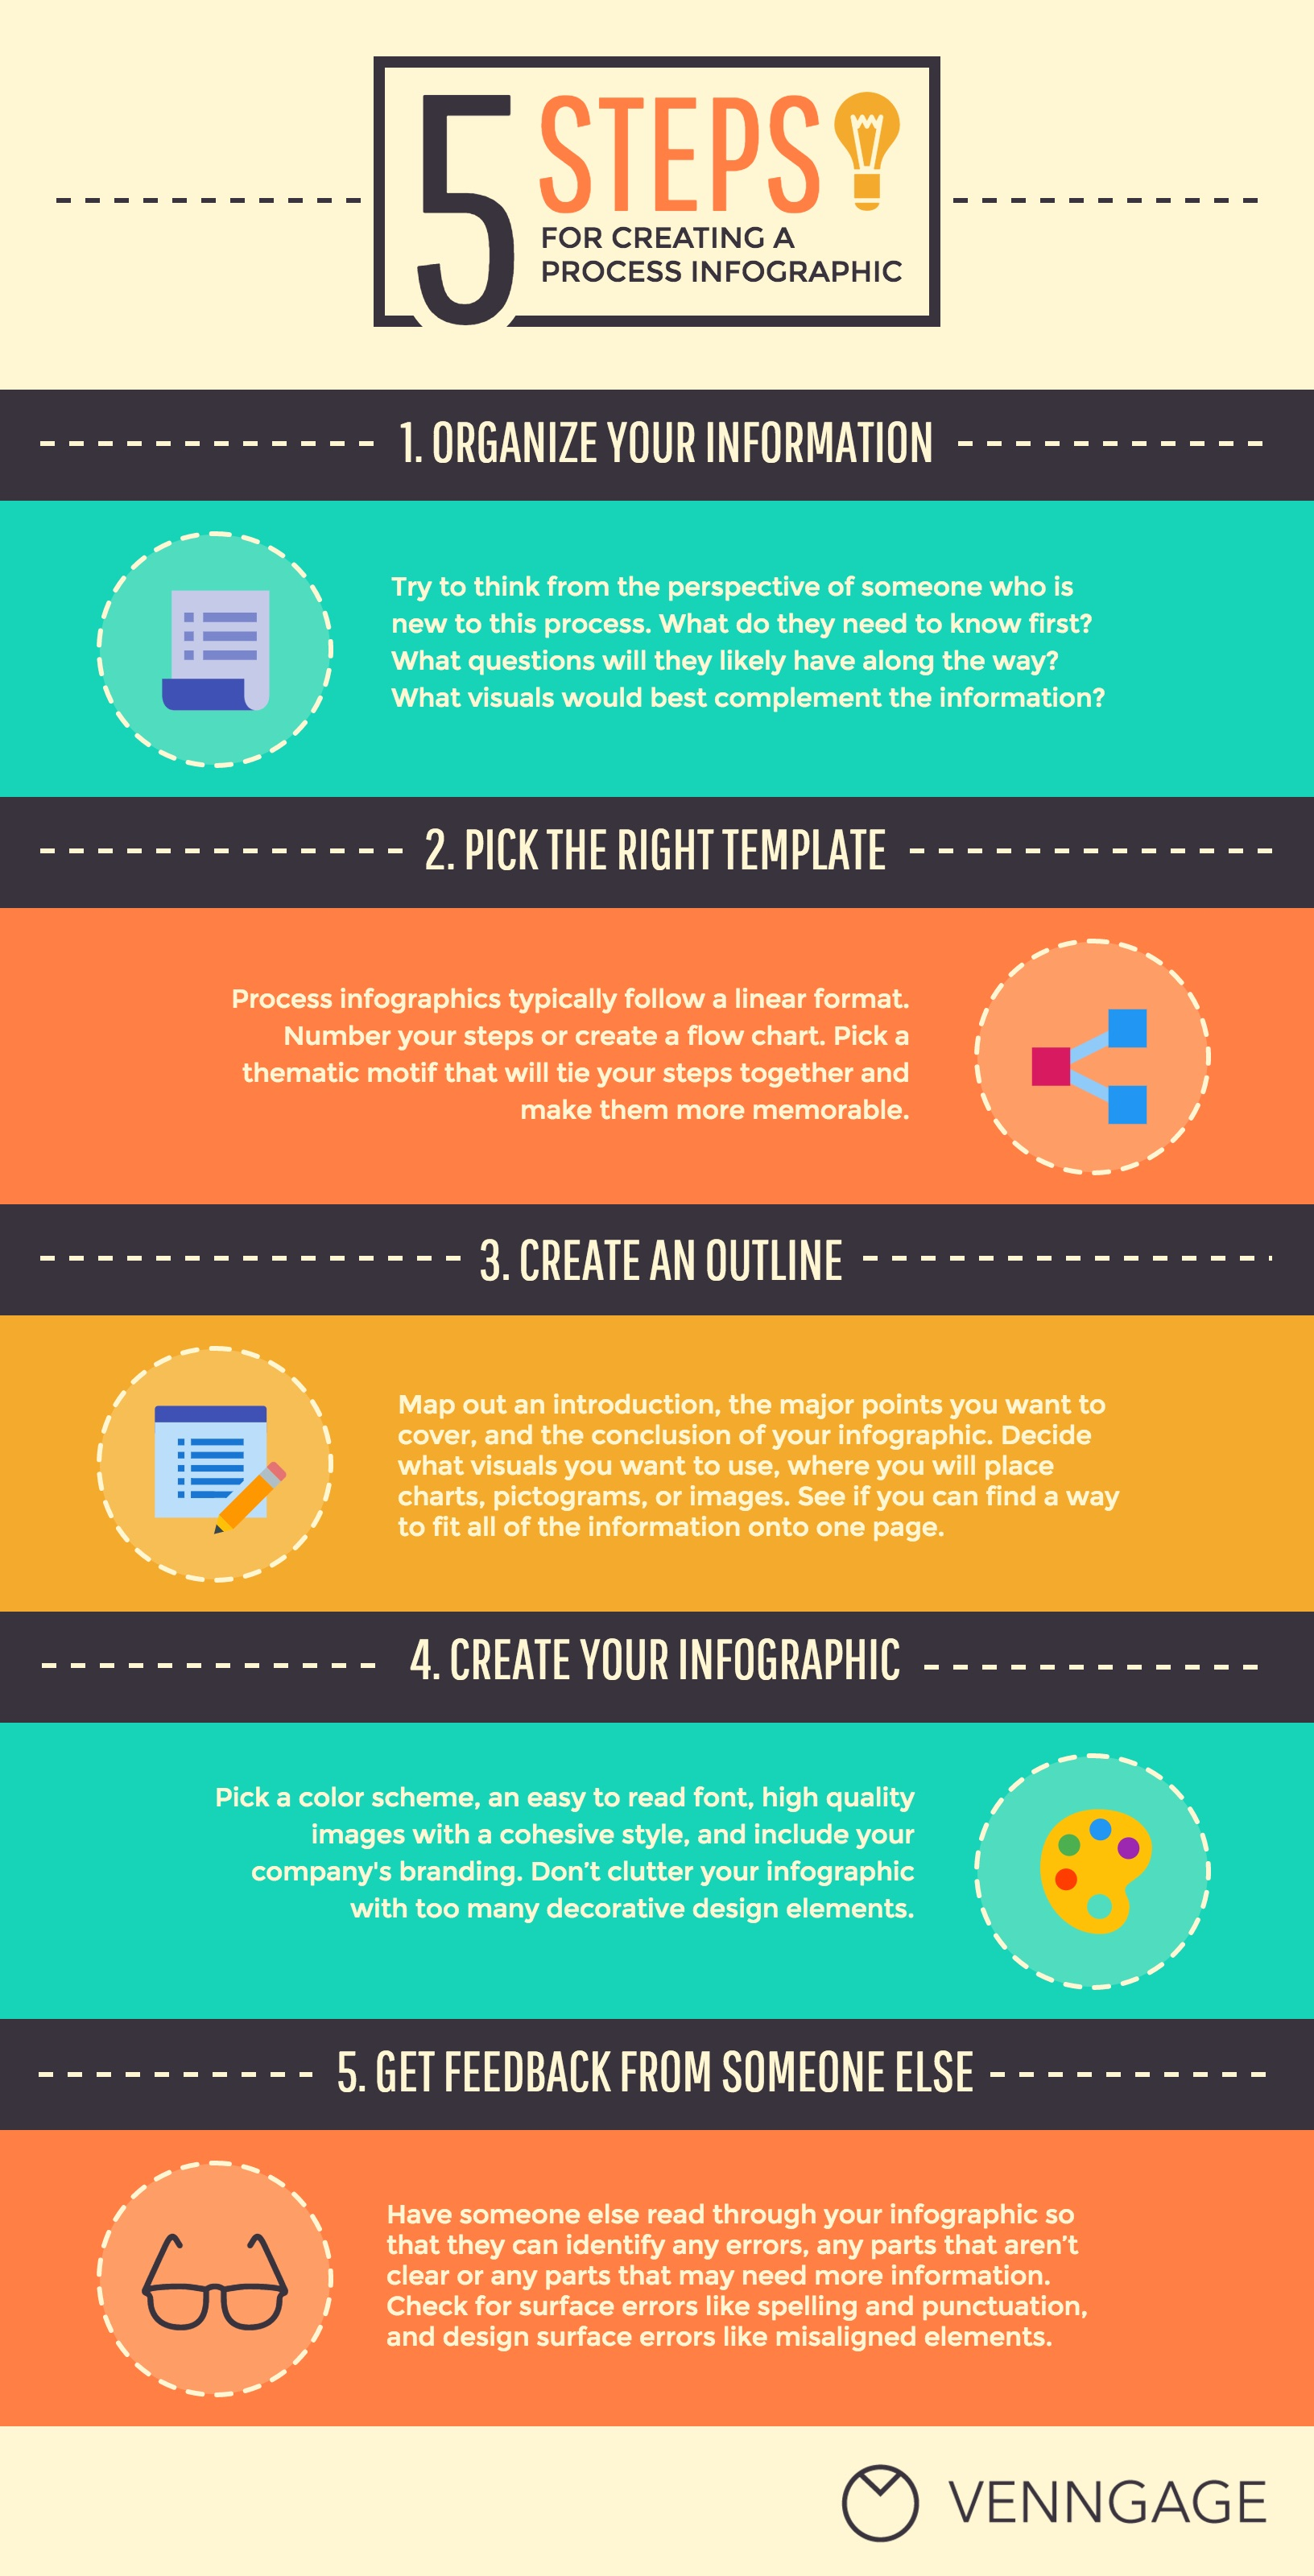 steps for creating a process infographic hr c suite process infographic